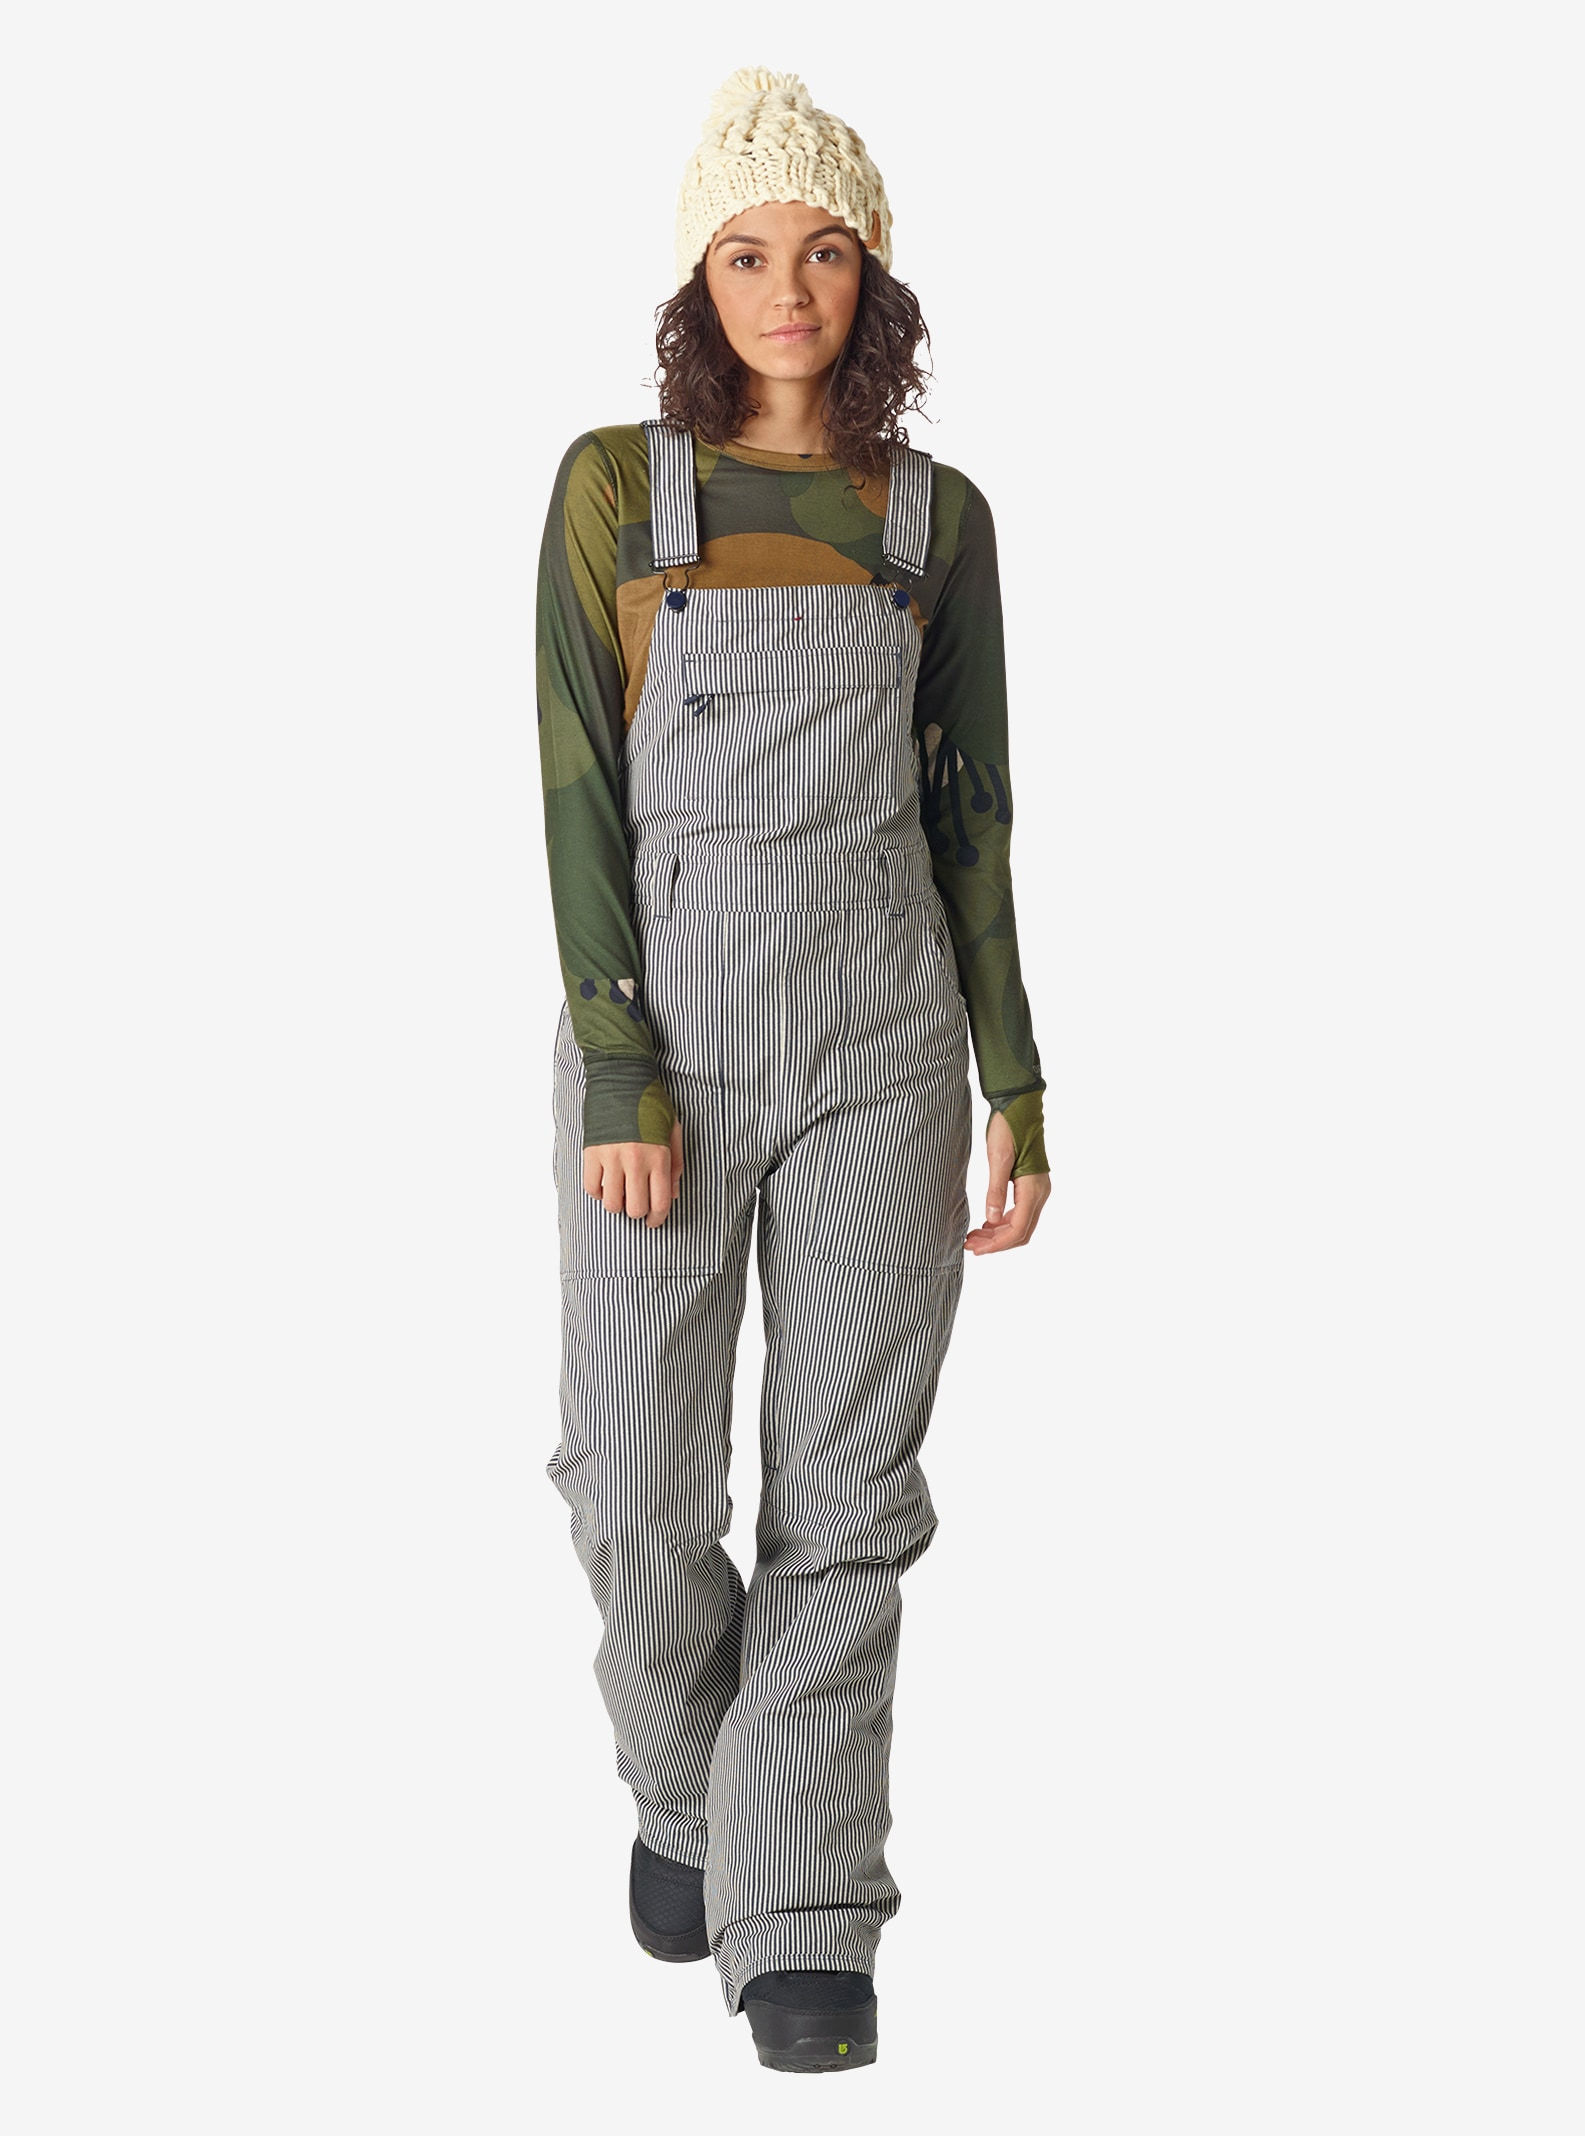 Women's Burton Avalon Bib Pant shown in Choo Choo Stripe